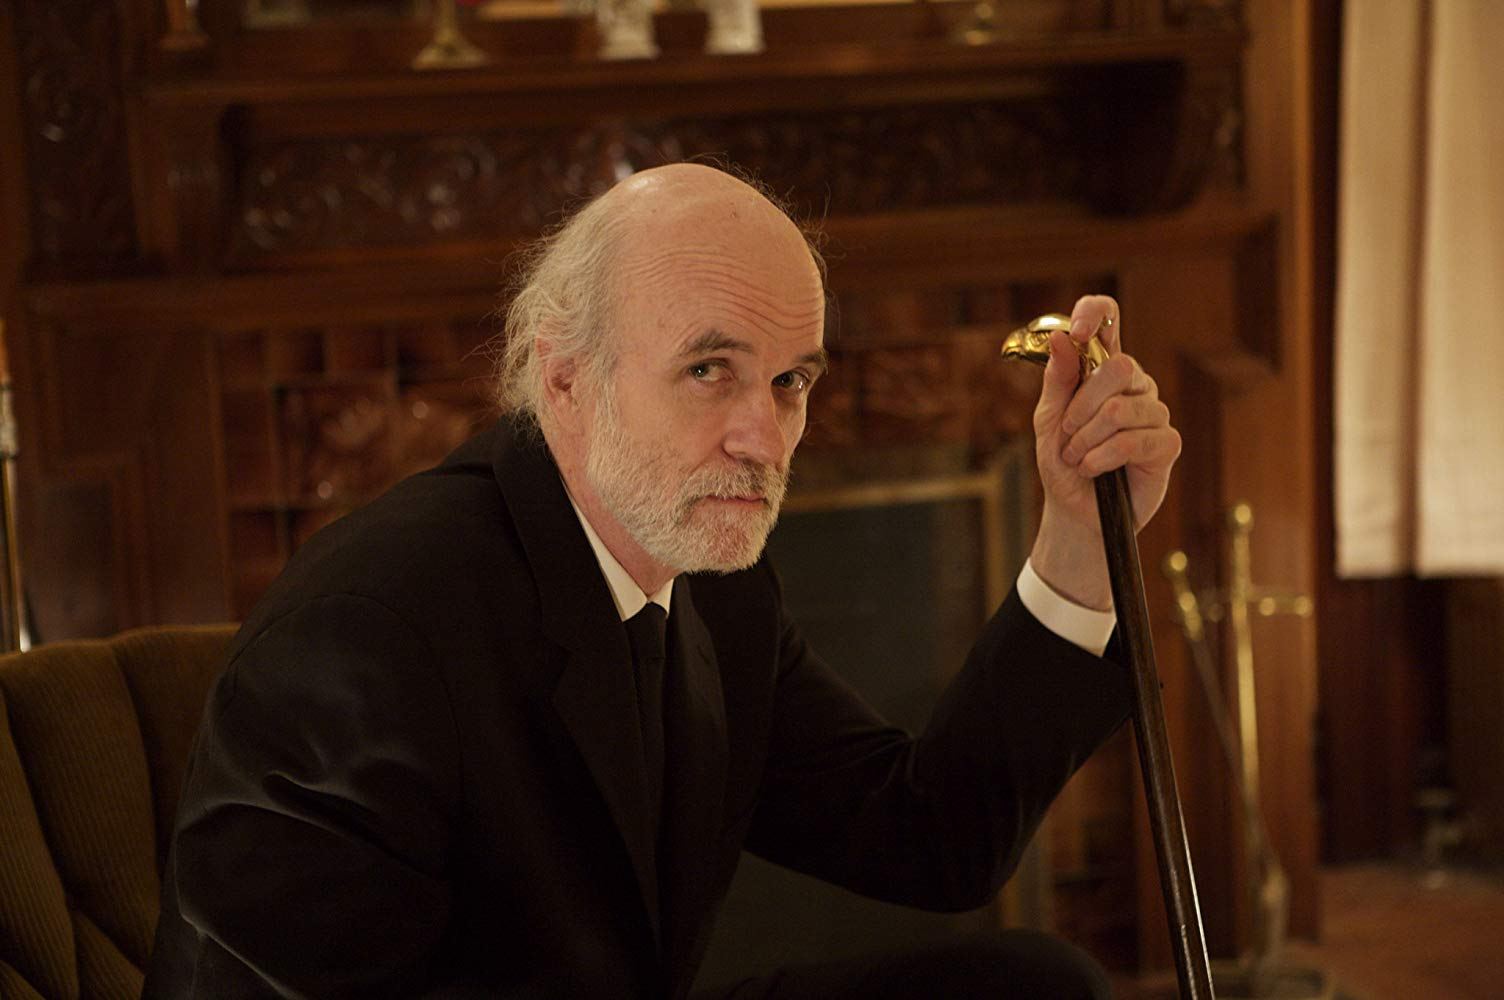 The sinister client Mr Ulman (Tom Noonan) in The House of the Devil (2009)